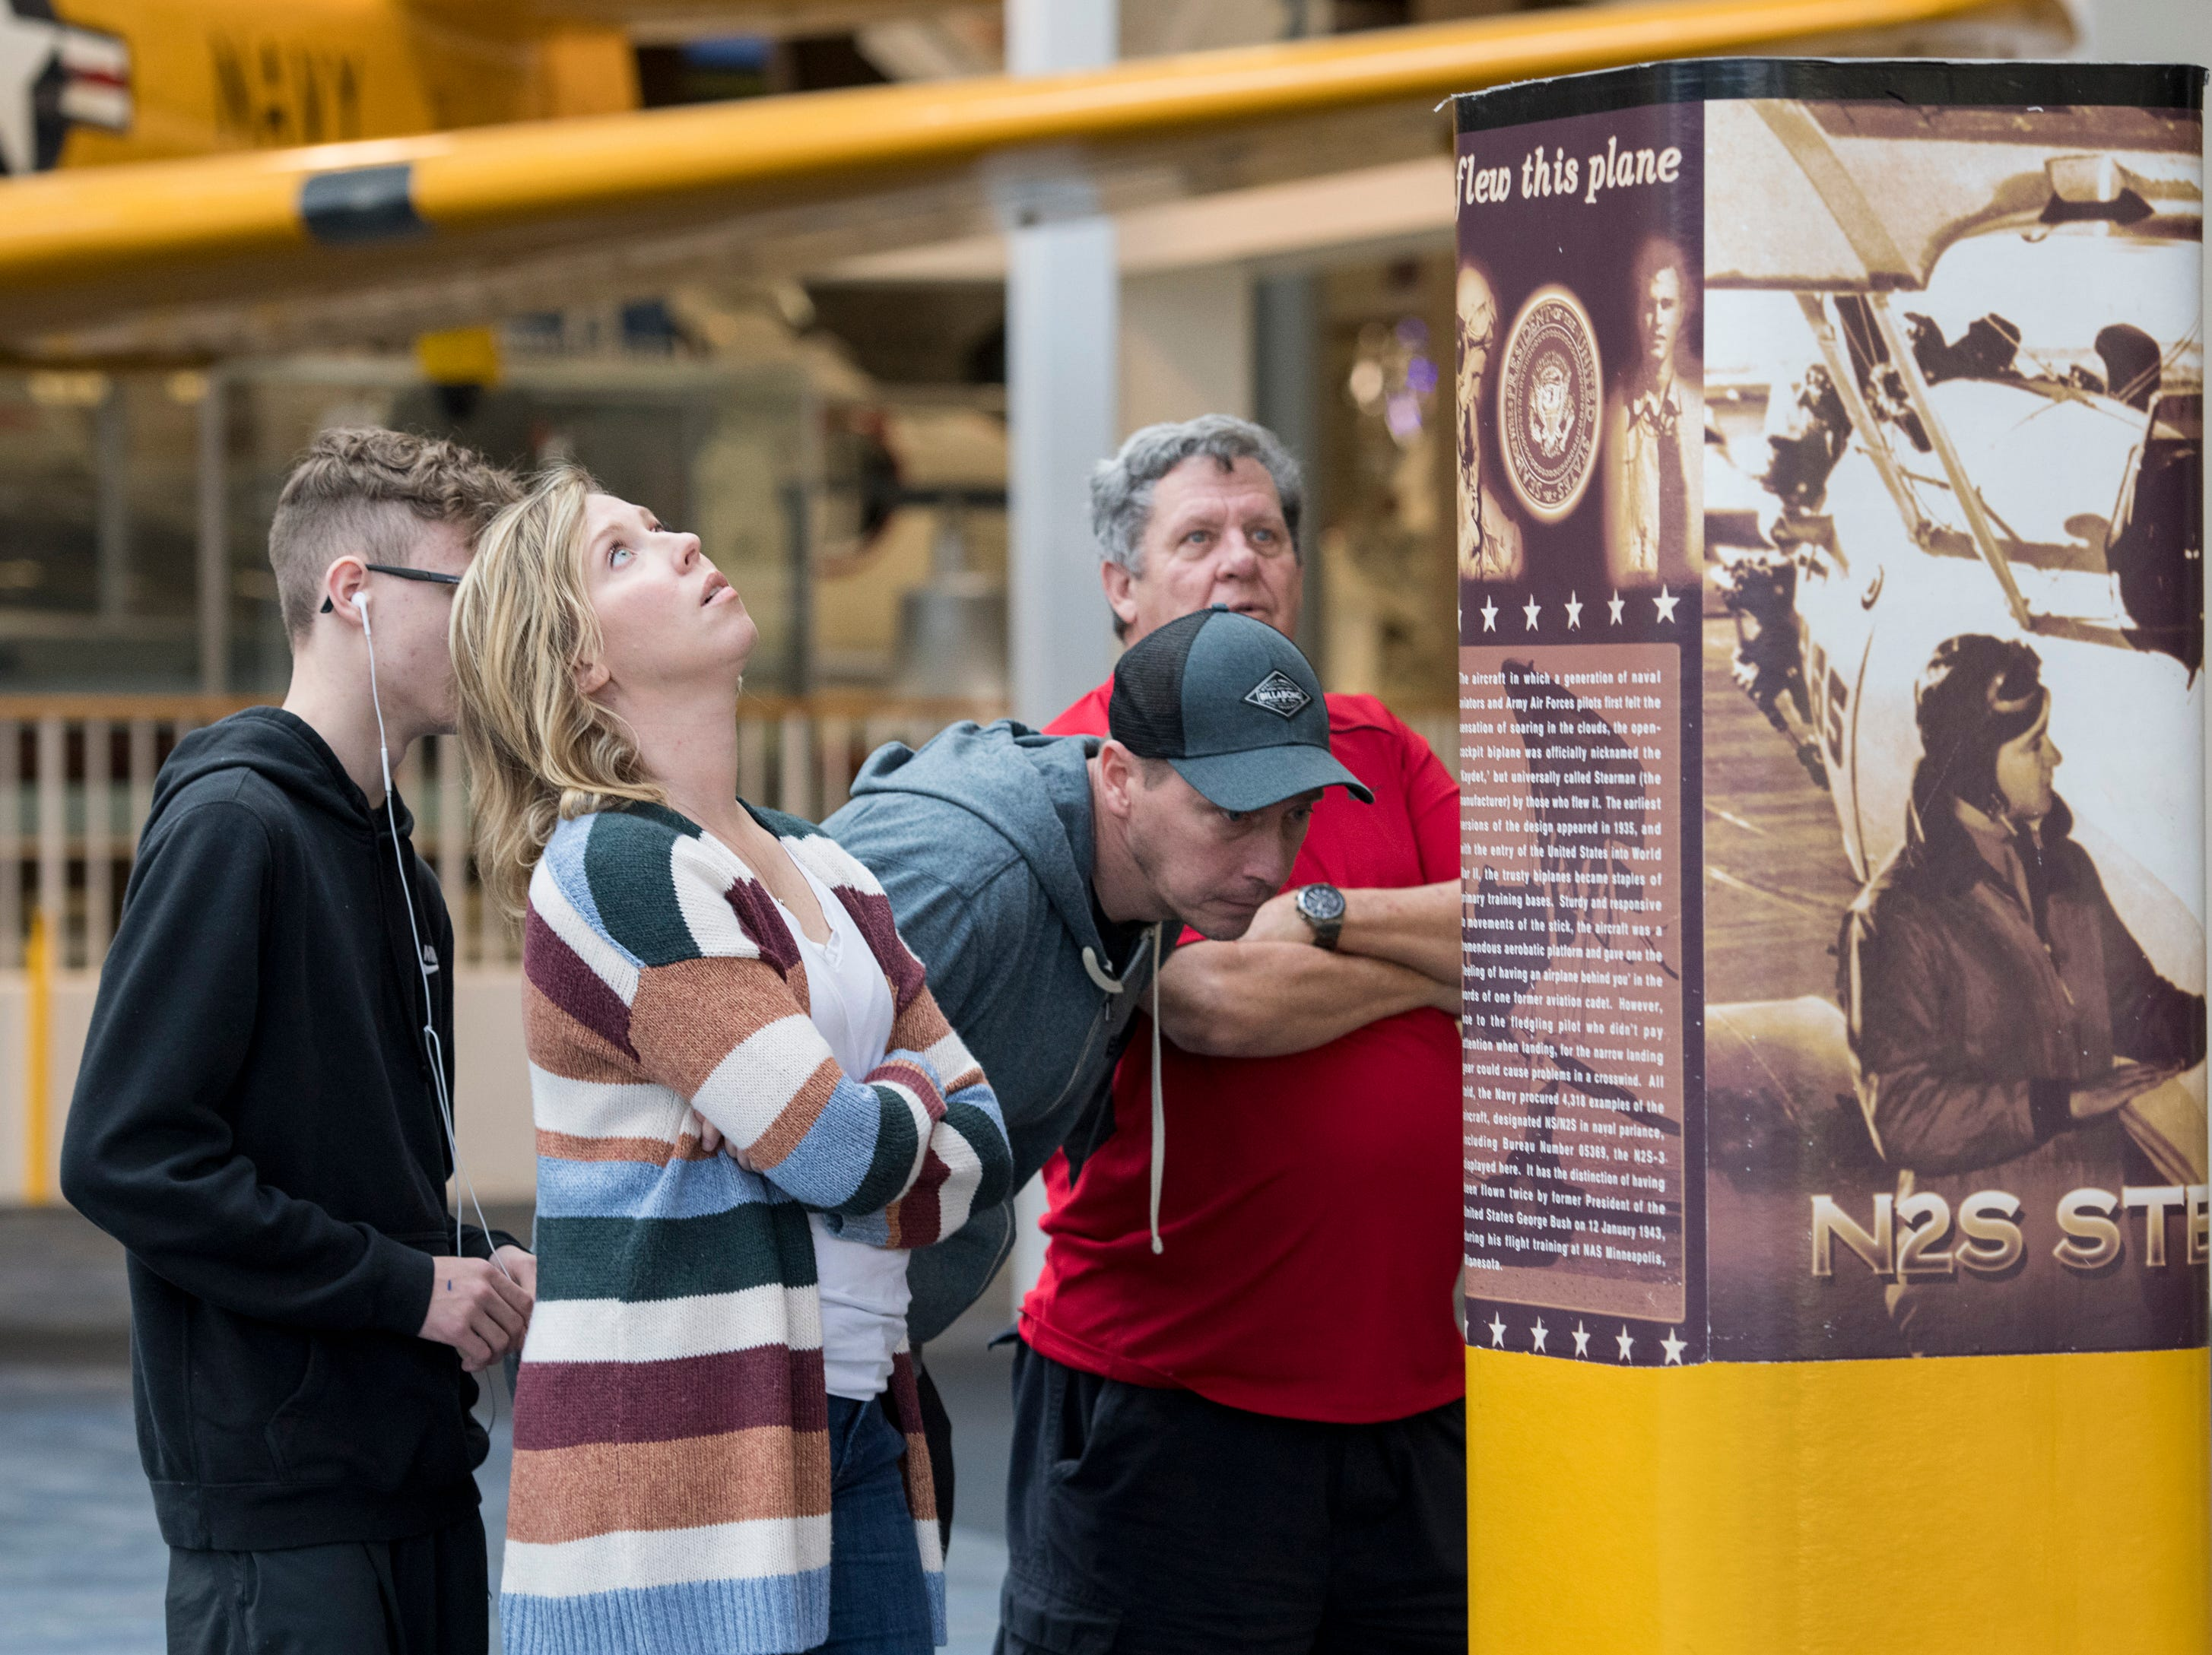 Colin Nance, 14, from left, Charity Nance, and Bryan Nance, of Navarre, along with Mickey Cochran, of Columbus, Ohio, check out the Stearman biplane flown by President (then cadet) George H.W. Bush while training during World War II on display at the National Naval Aviation Museum in Pensacola on Monday, December 3, 2018.